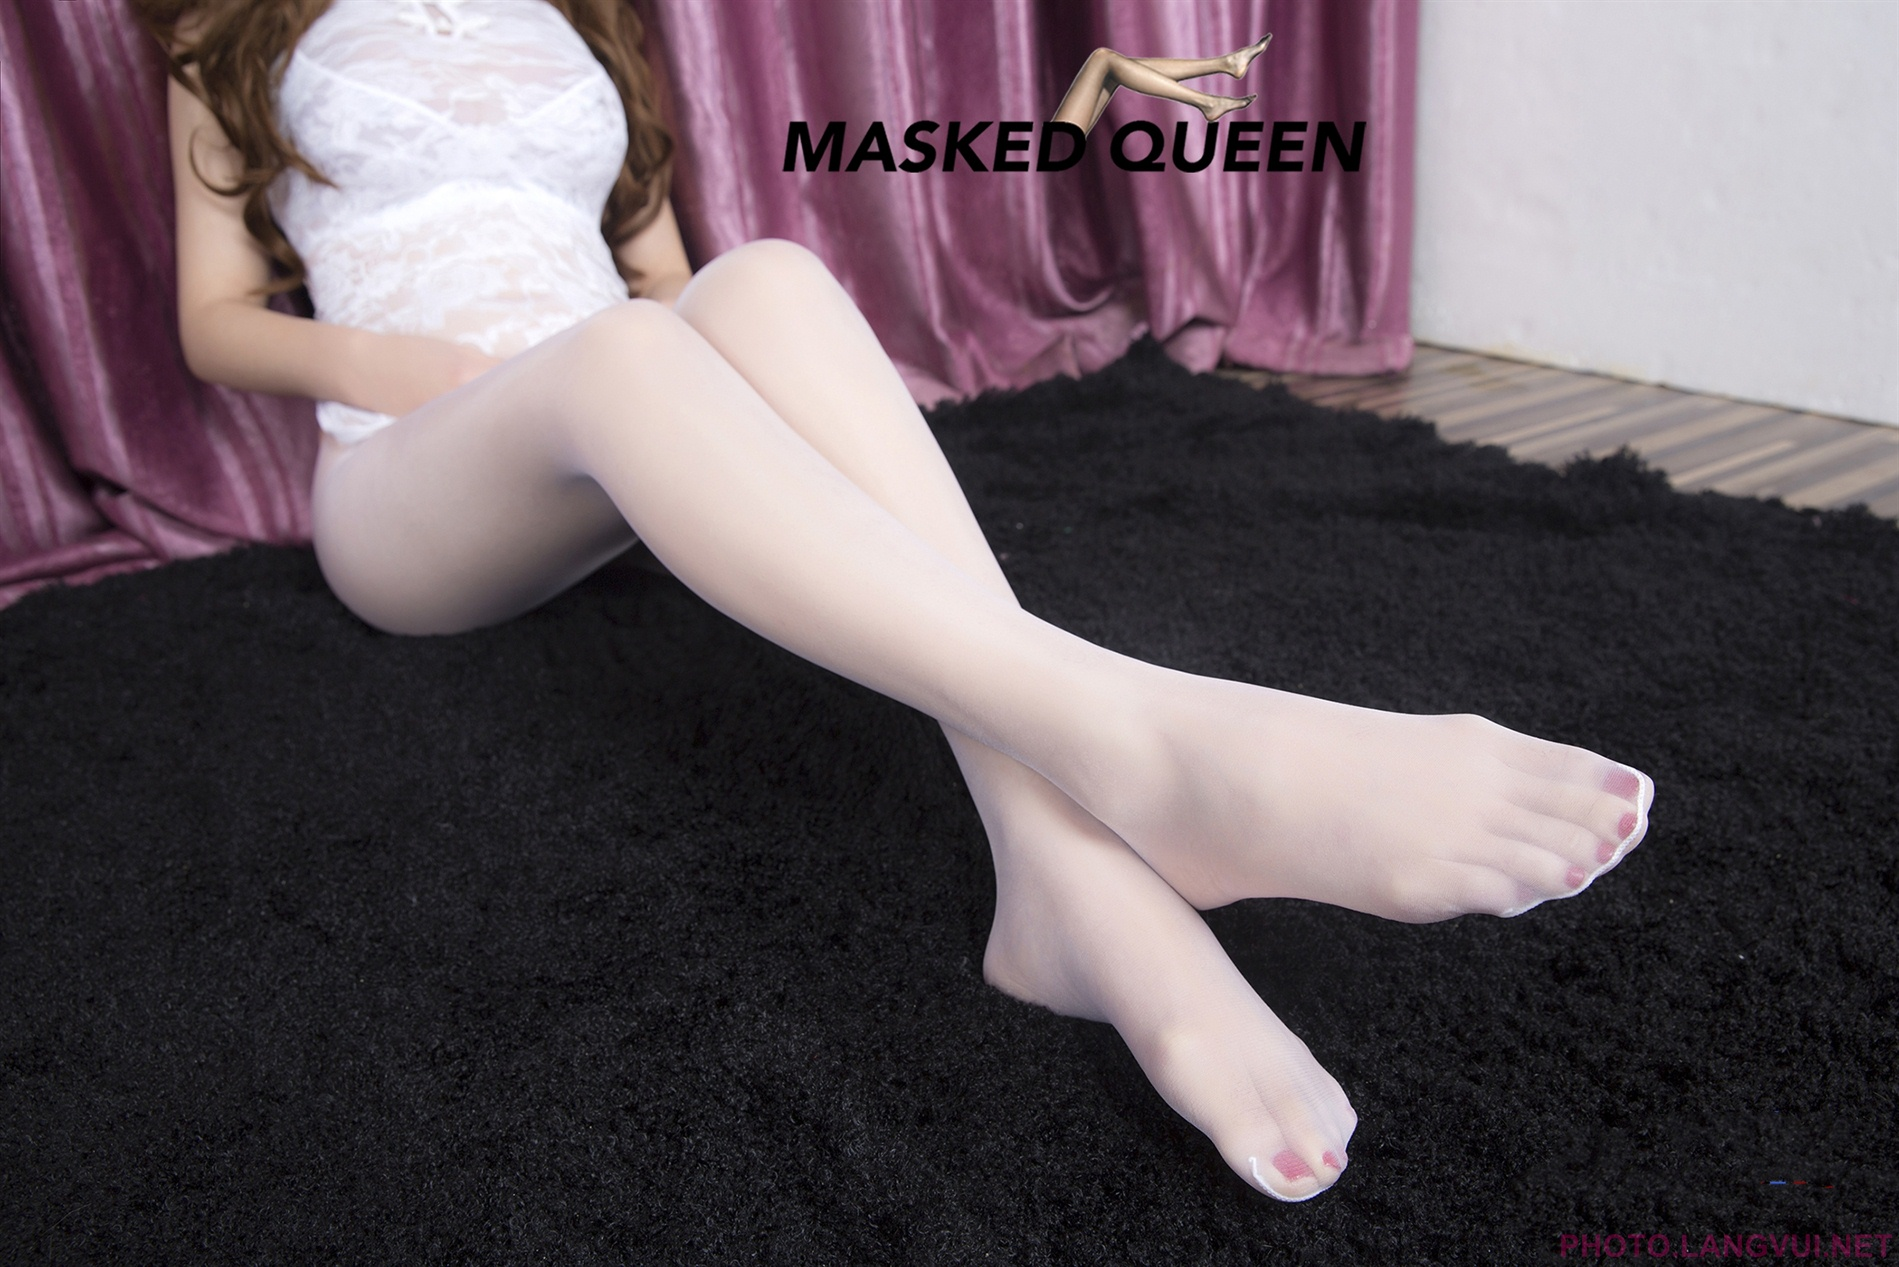 MASKED QUEEN No 004